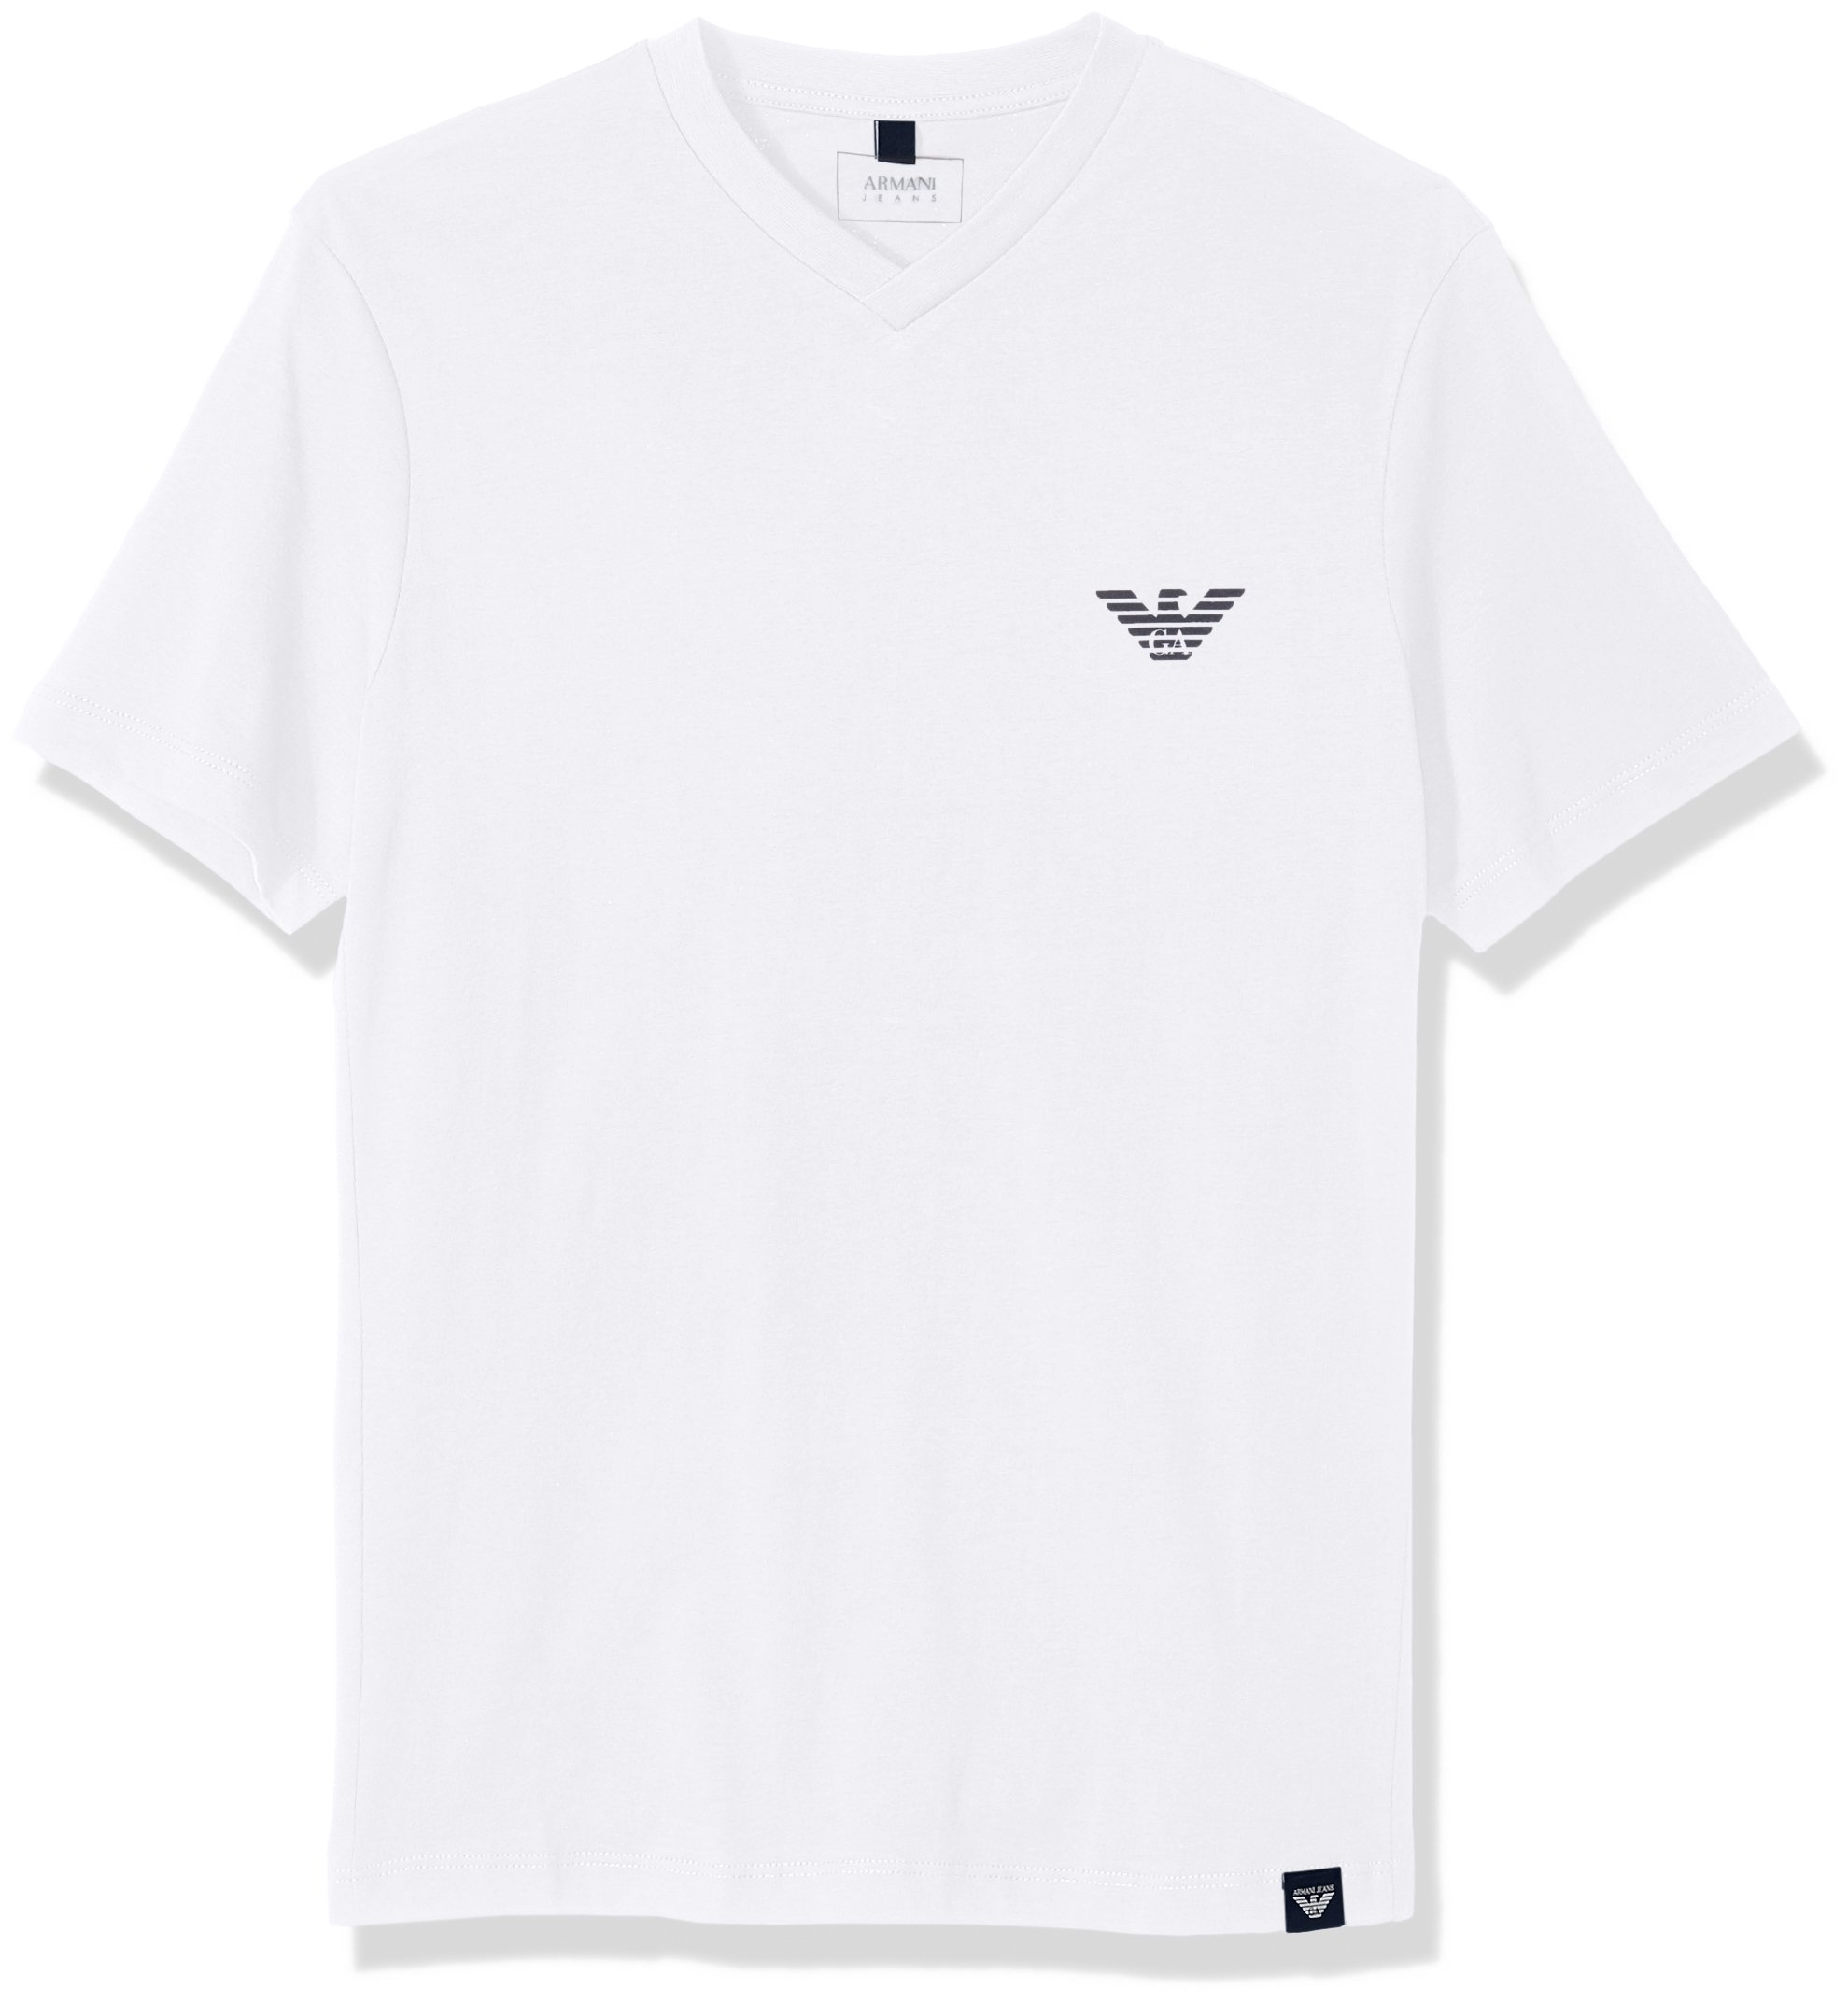 ARMANI JEANS Men's Side Logo T-Shirt, White, Large